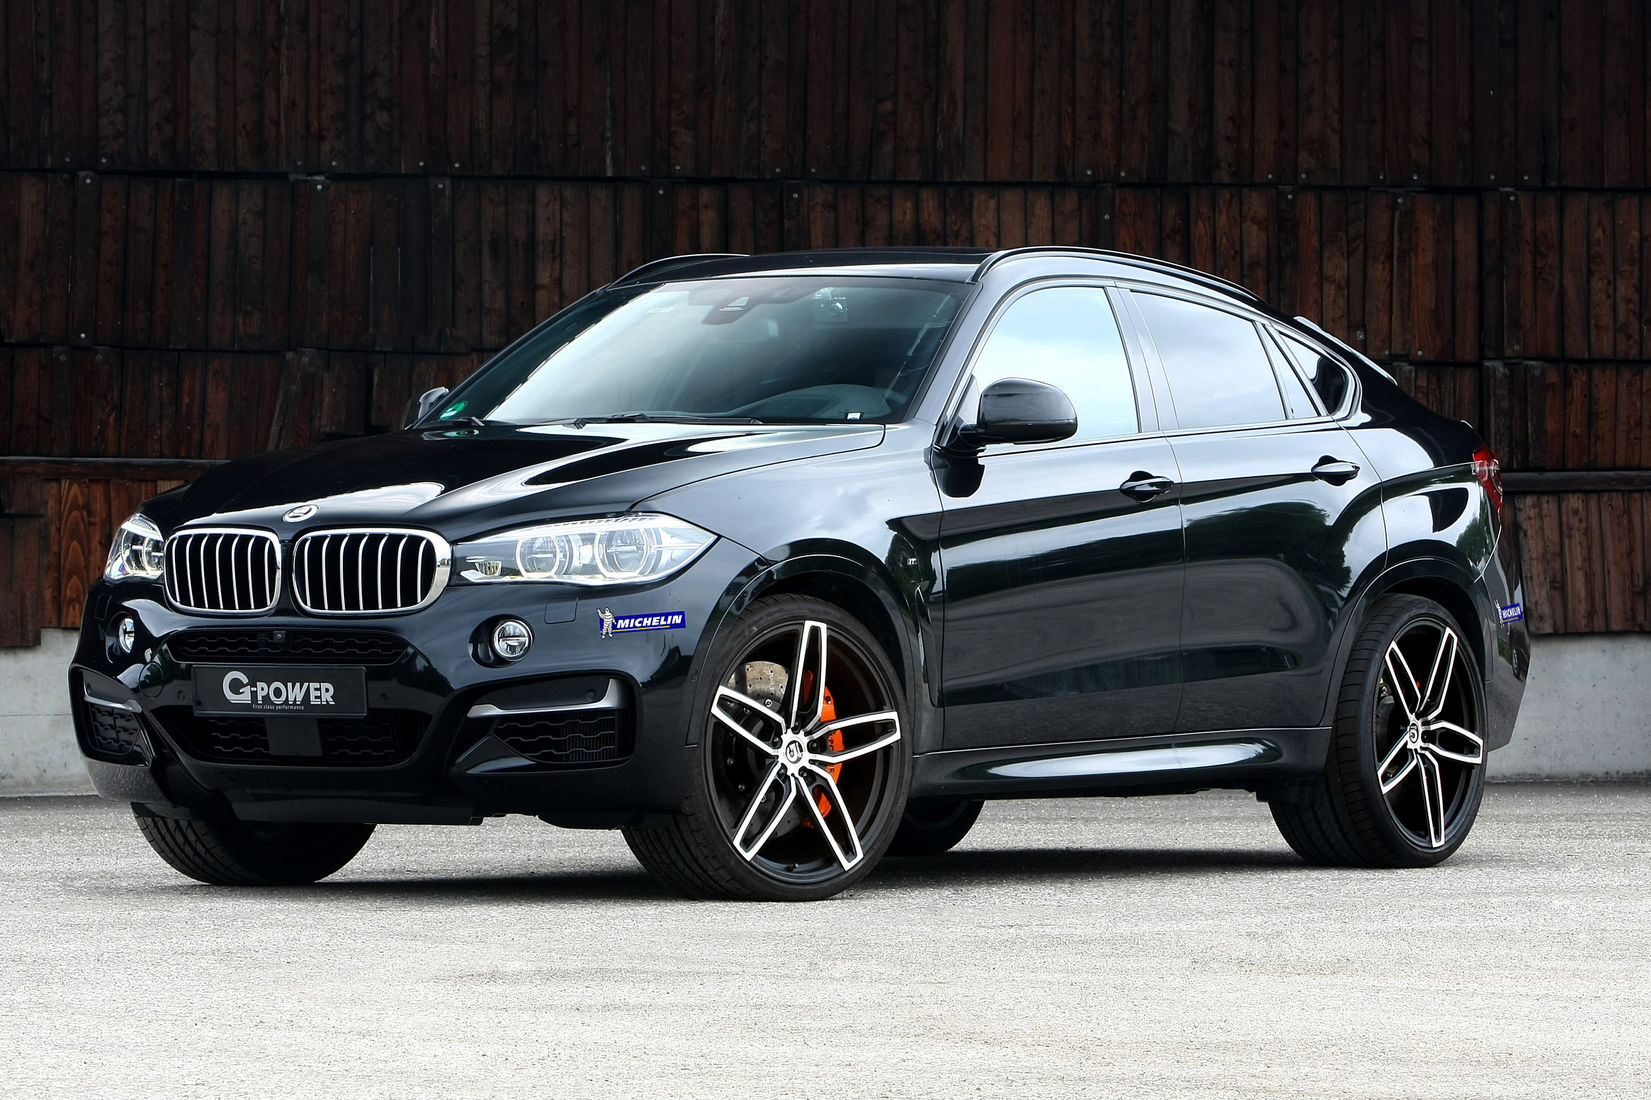 2018 BMW X6 Car Photos Catalog 2019